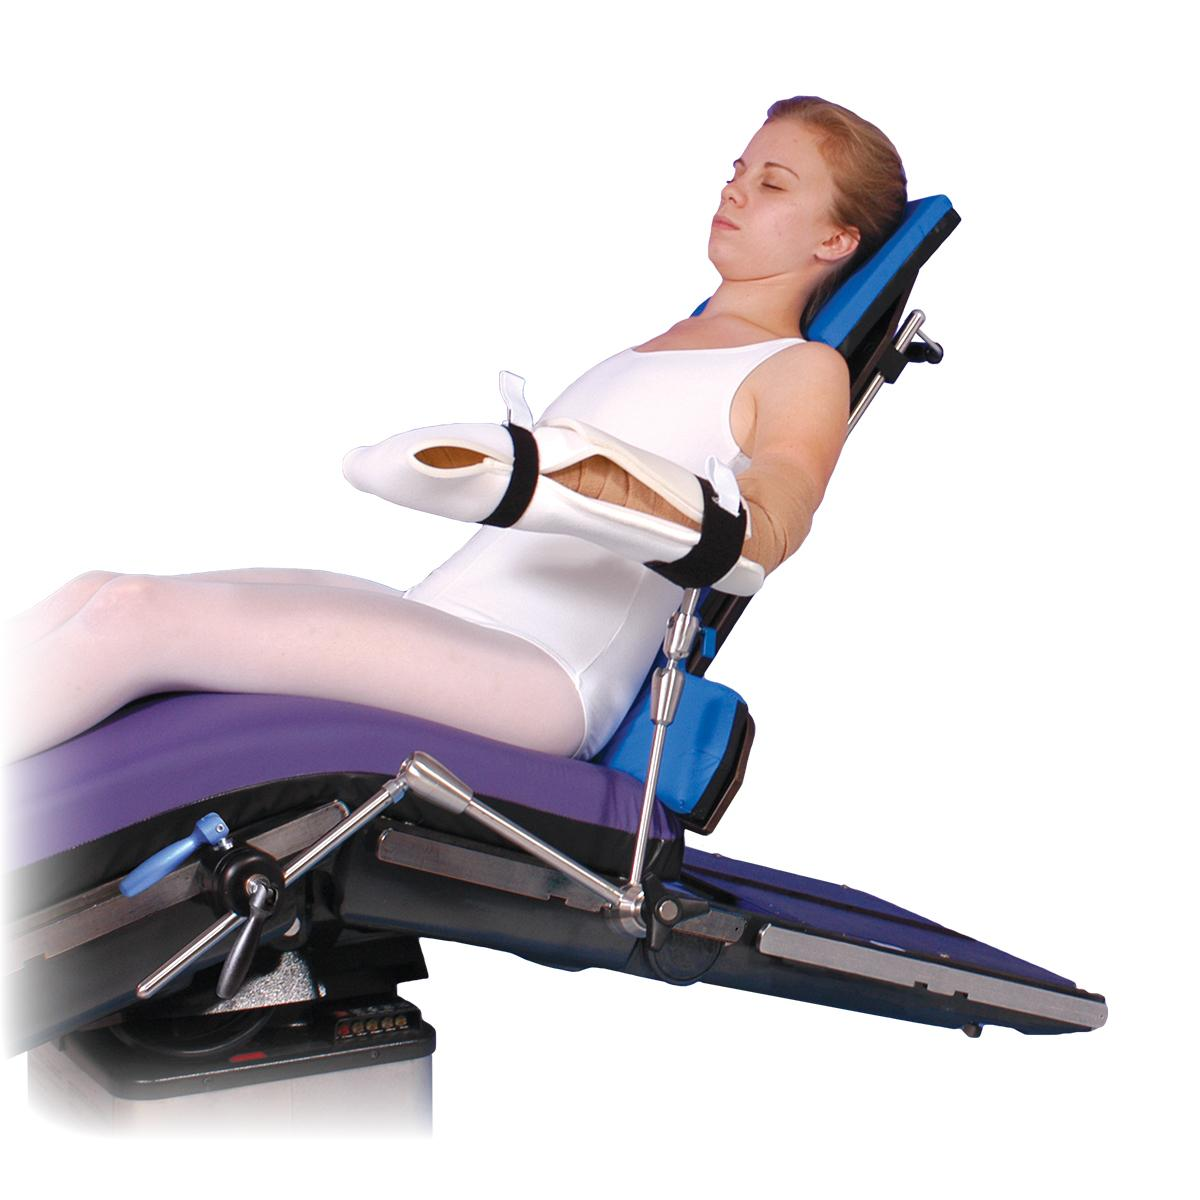 Allen® Arm Positioner, patient in seated position